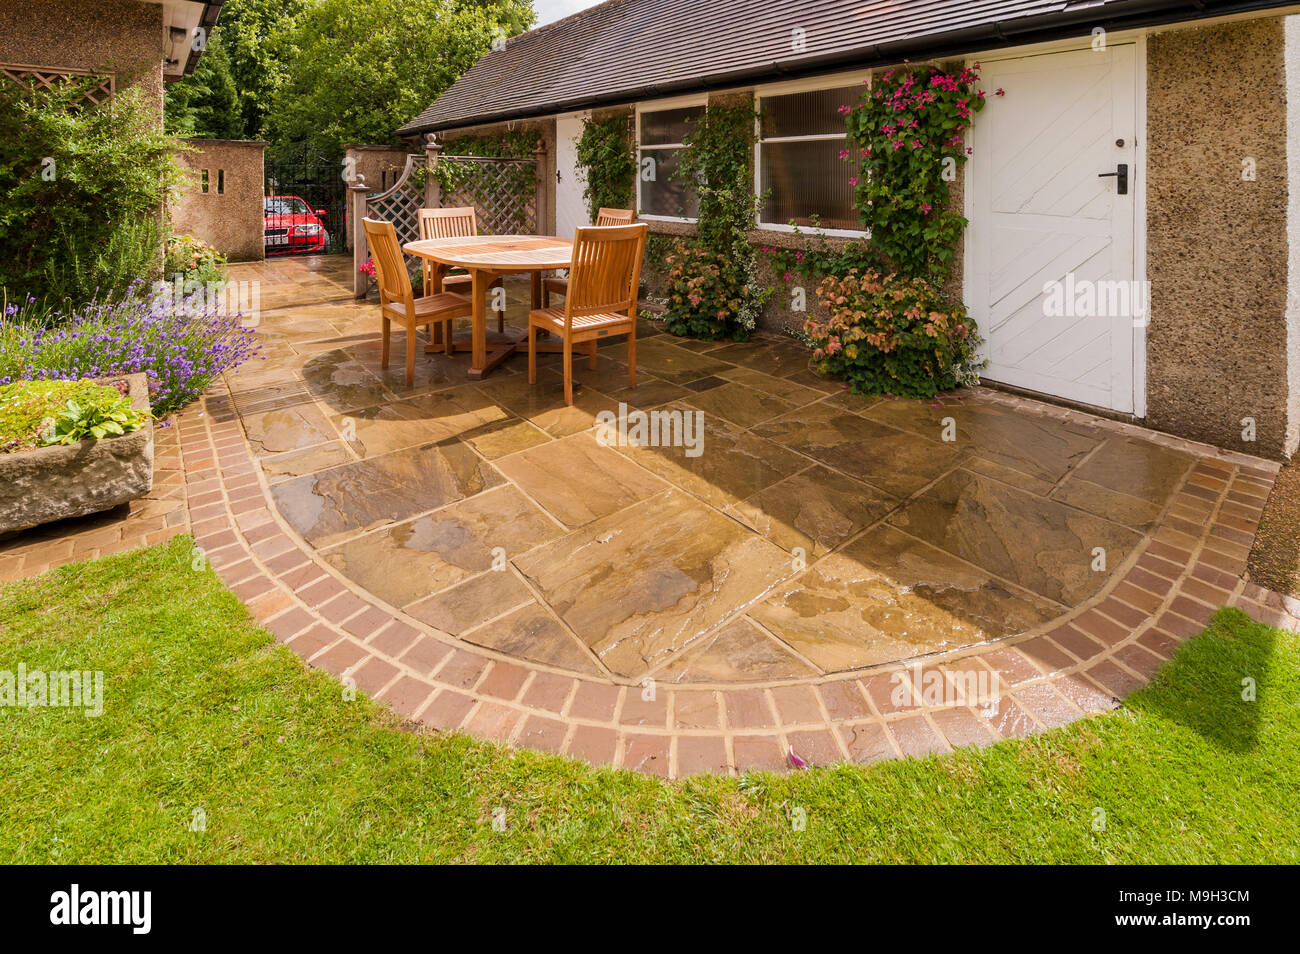 Designed Landscaped Garden With Curved Paved Patio Lawn